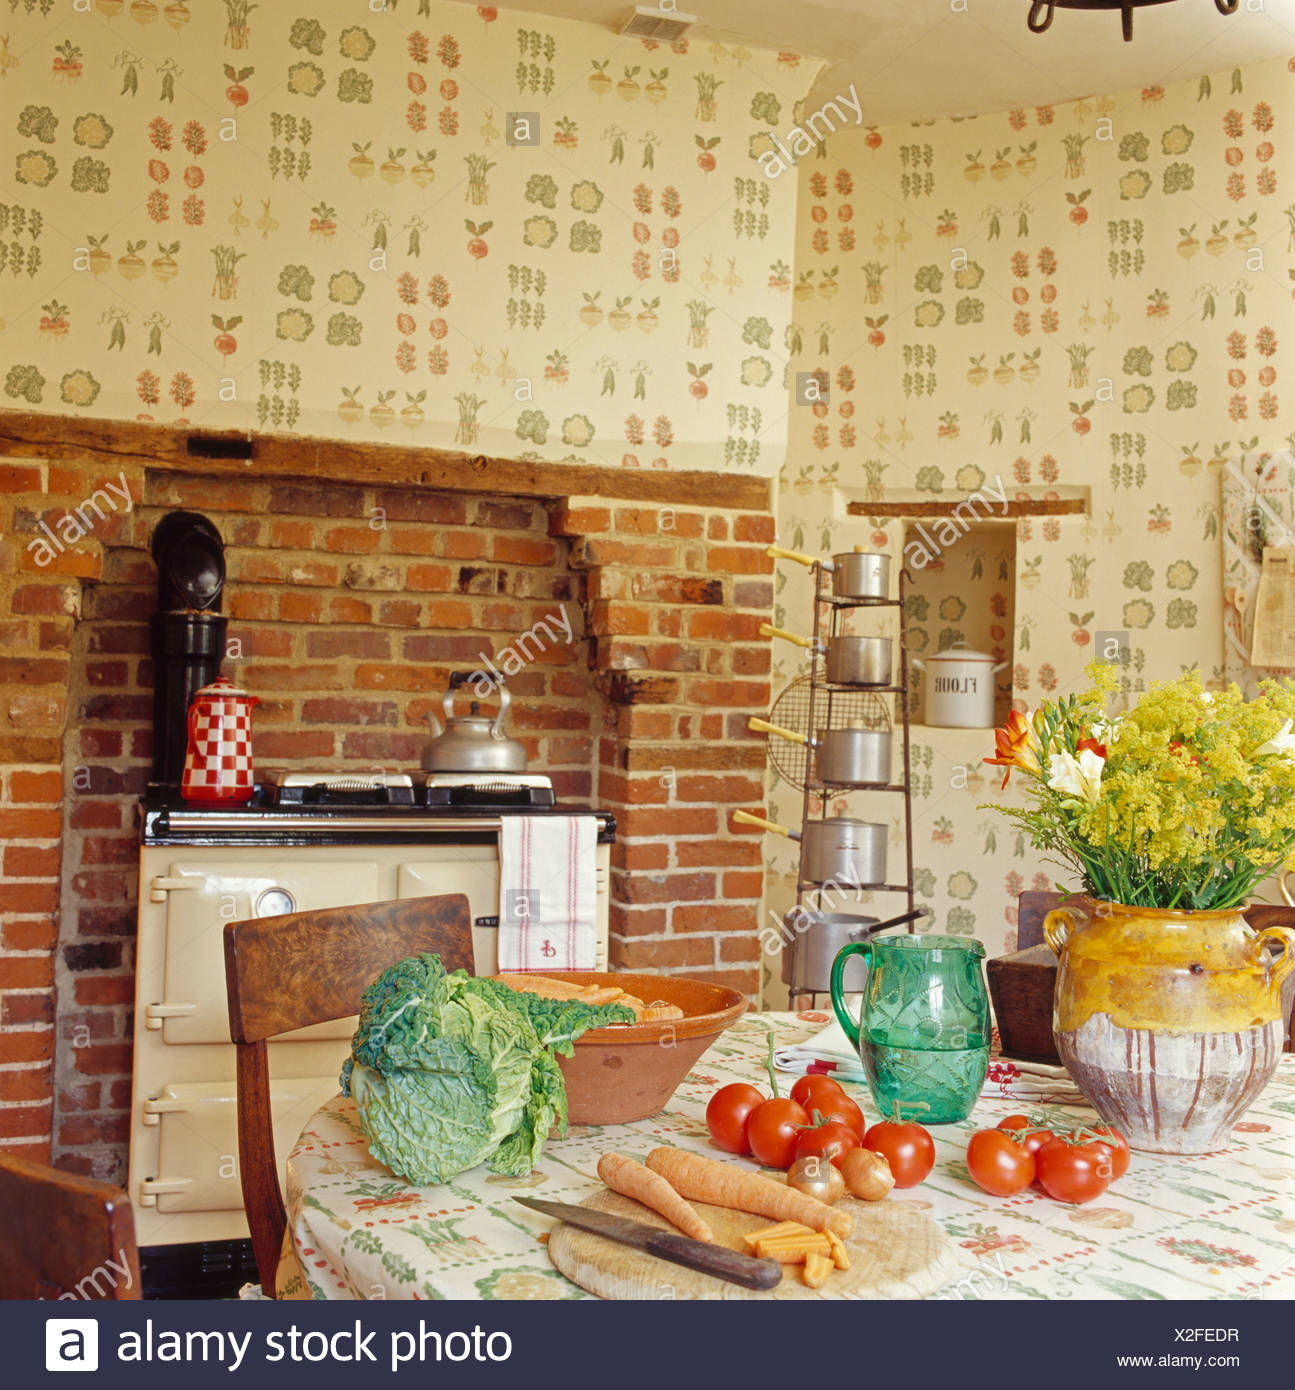 Vegetables on table in country kitchen with cream Aga oven and